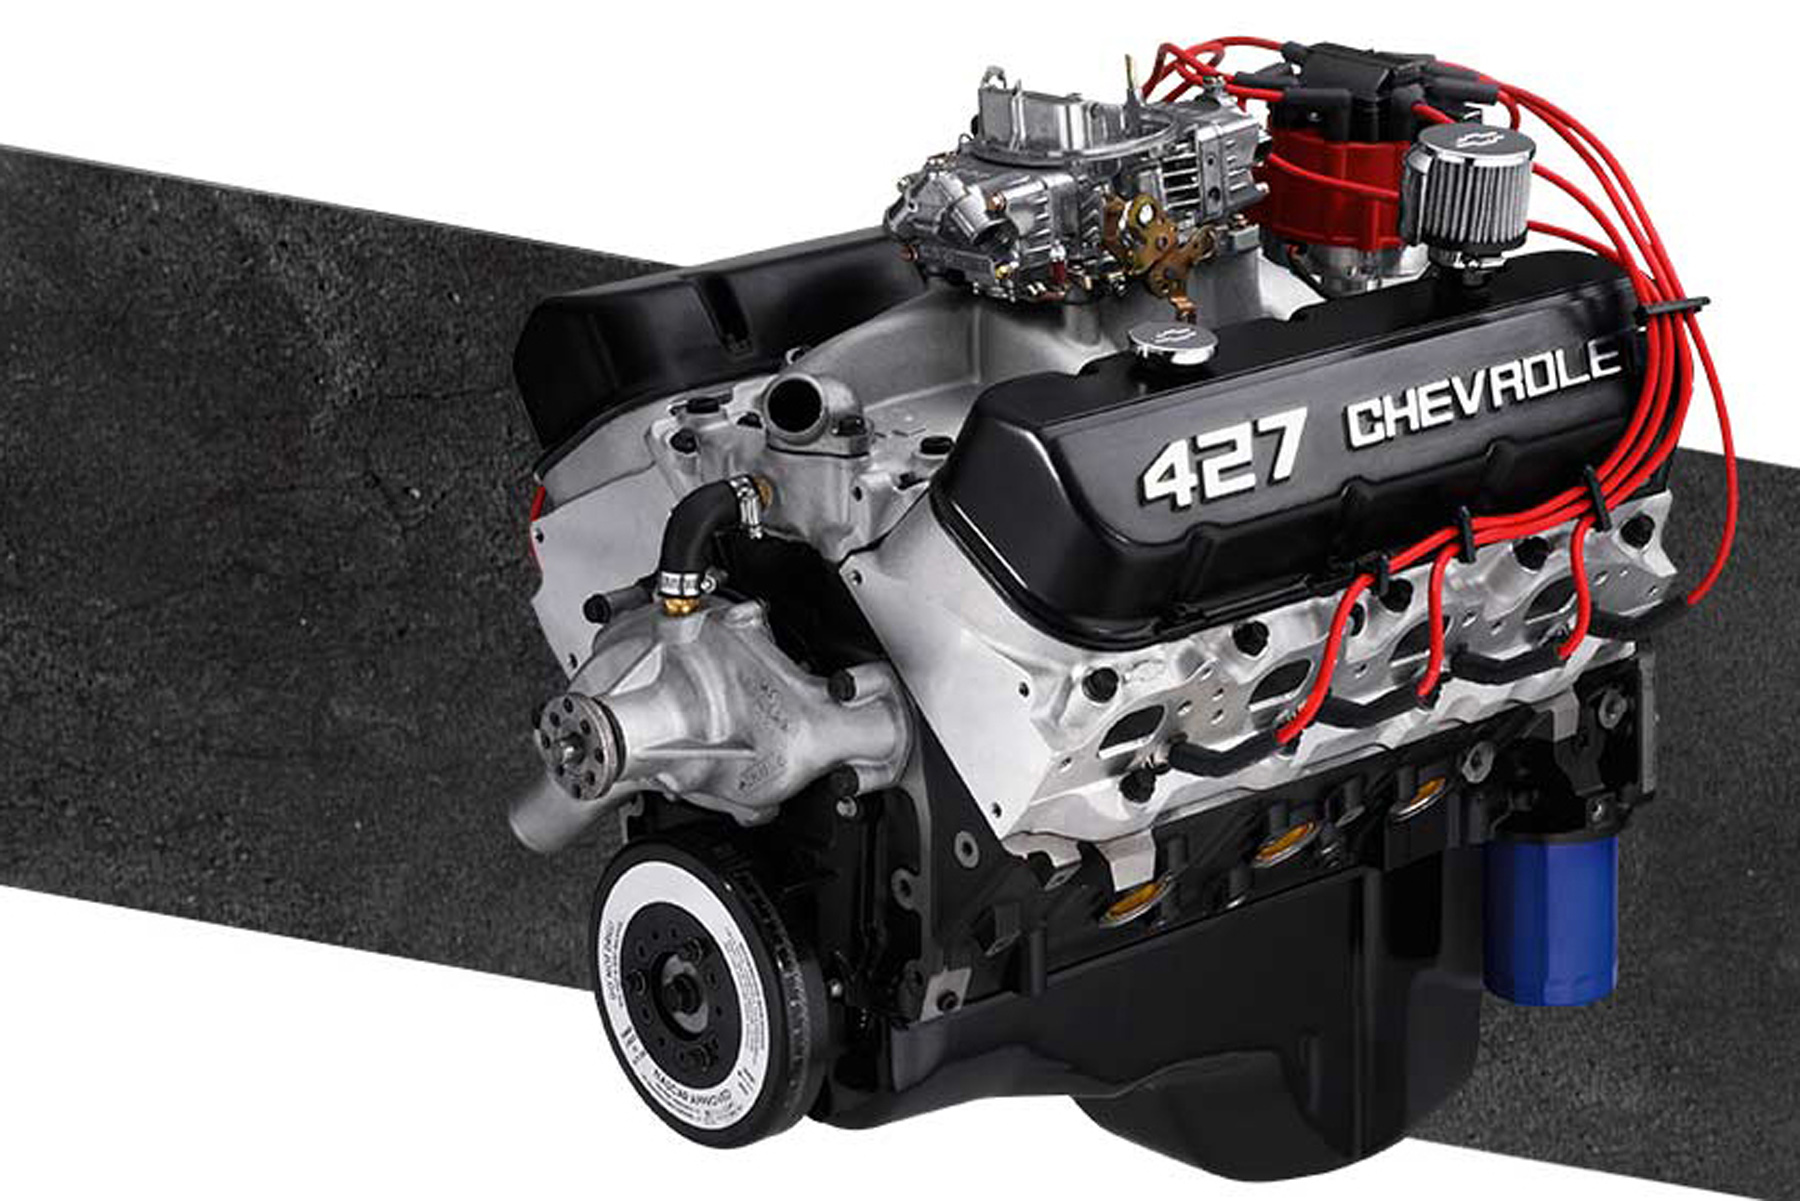 hight resolution of since its inception the 427 cubic inch chevrolet big block has become a legend for engine enthusiasts around the world whether it s a small block stroker